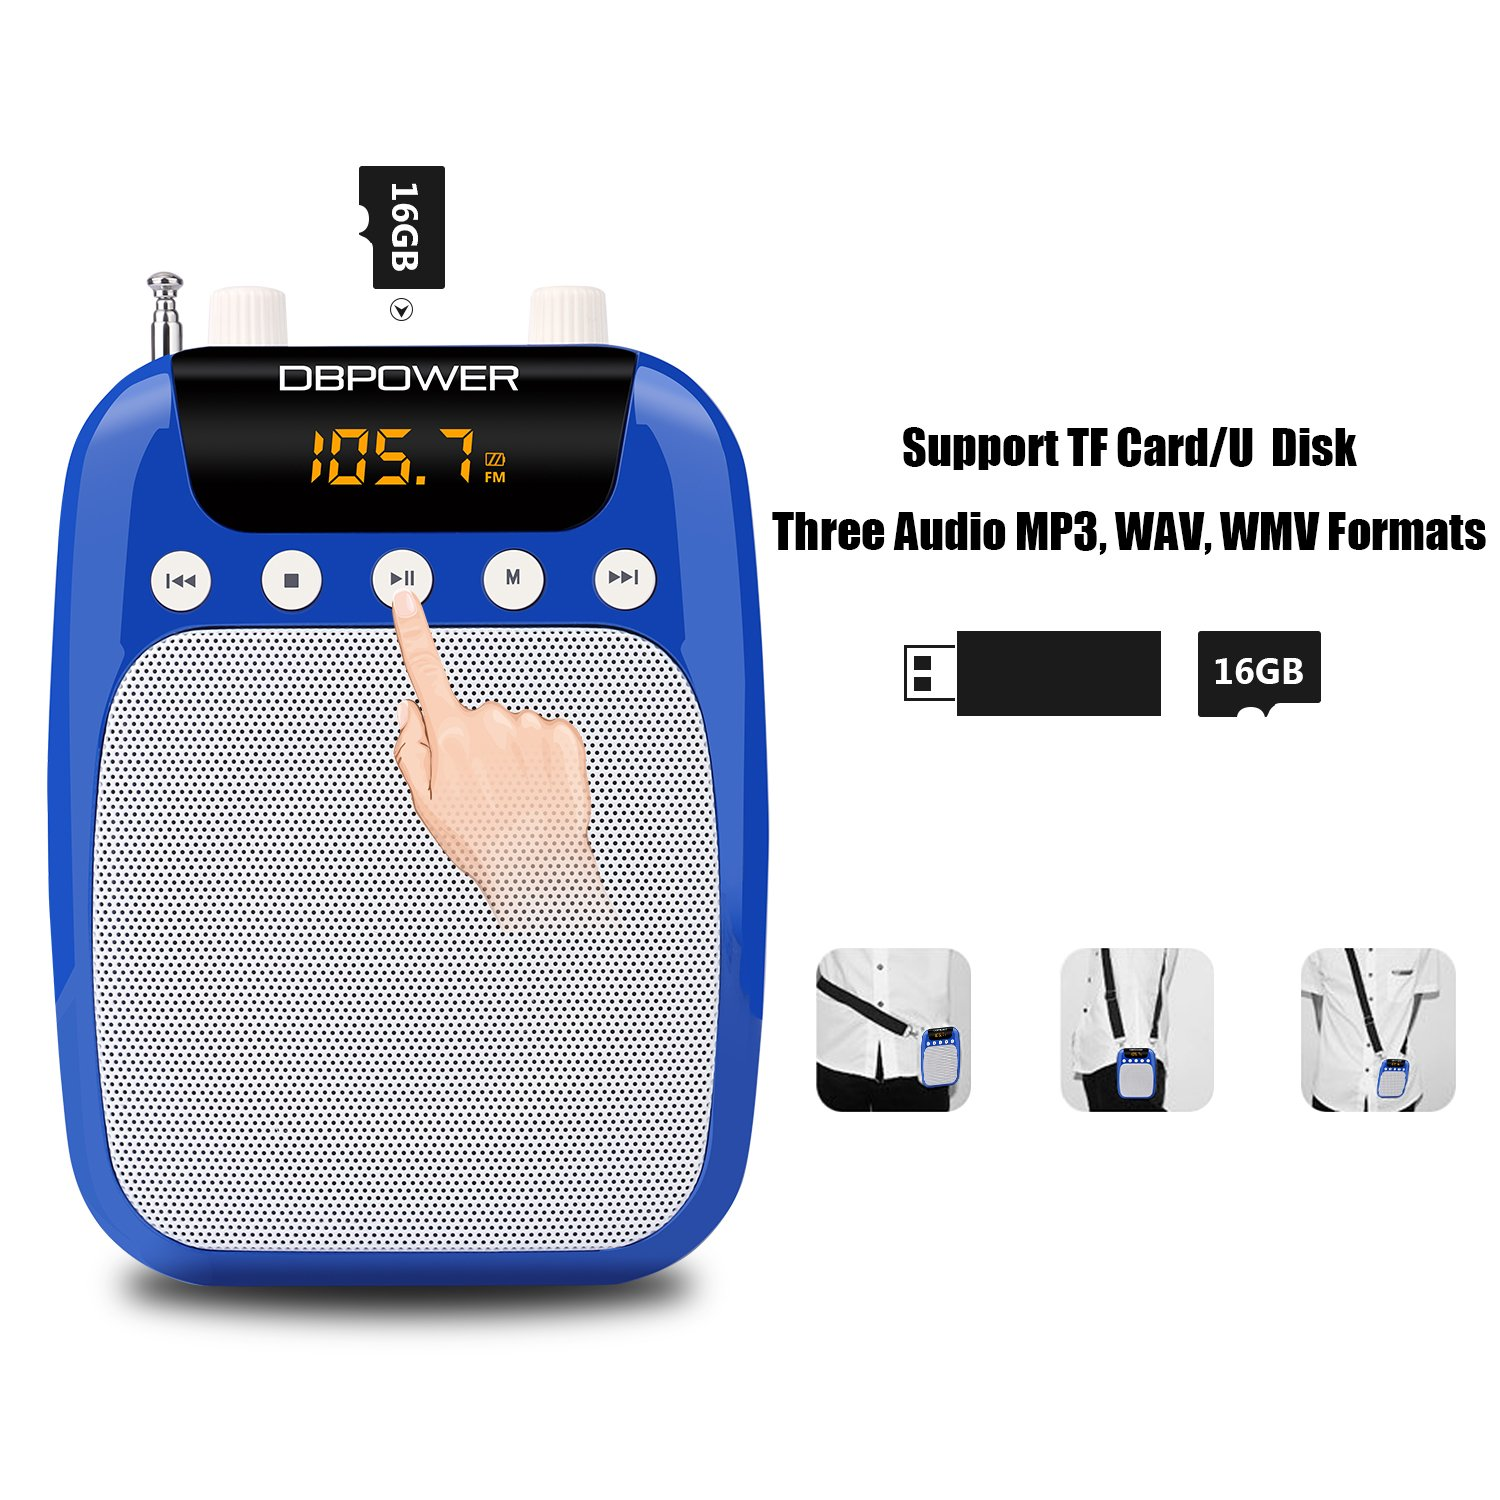 Dbpower 15 Watts Voice Amplifier And Fm Radio Mp3 With Mdisk Headset Super Boom J278 Comfortable Waist Neck Band Belt Clip For Teachers Tour Guides Coaches